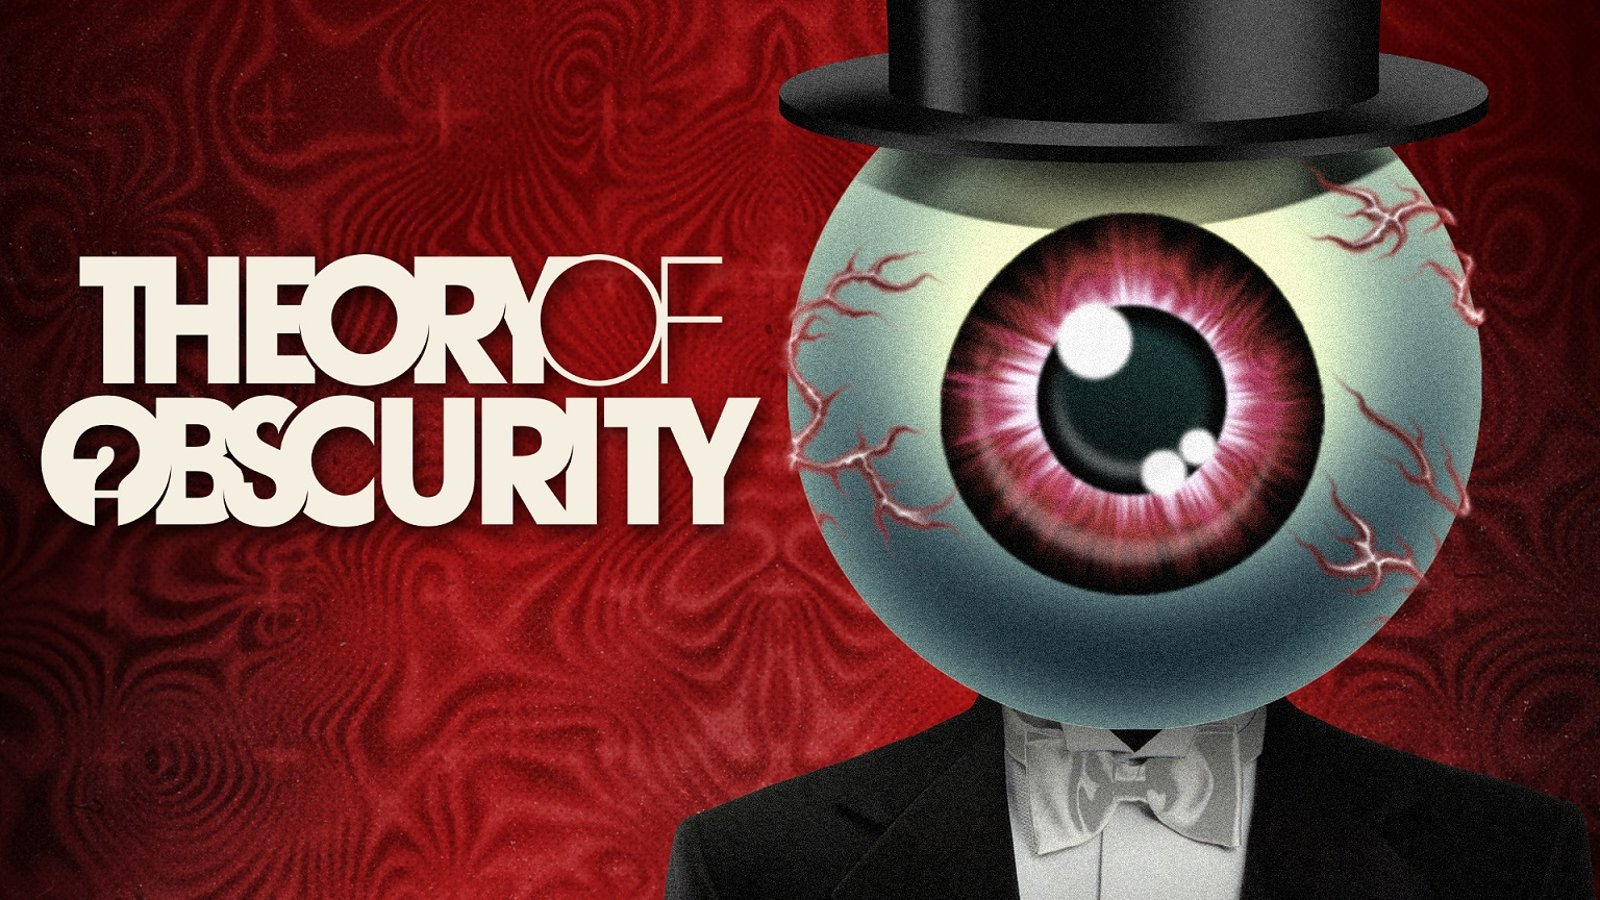 Theory of Obscurity - A Film About the Residents